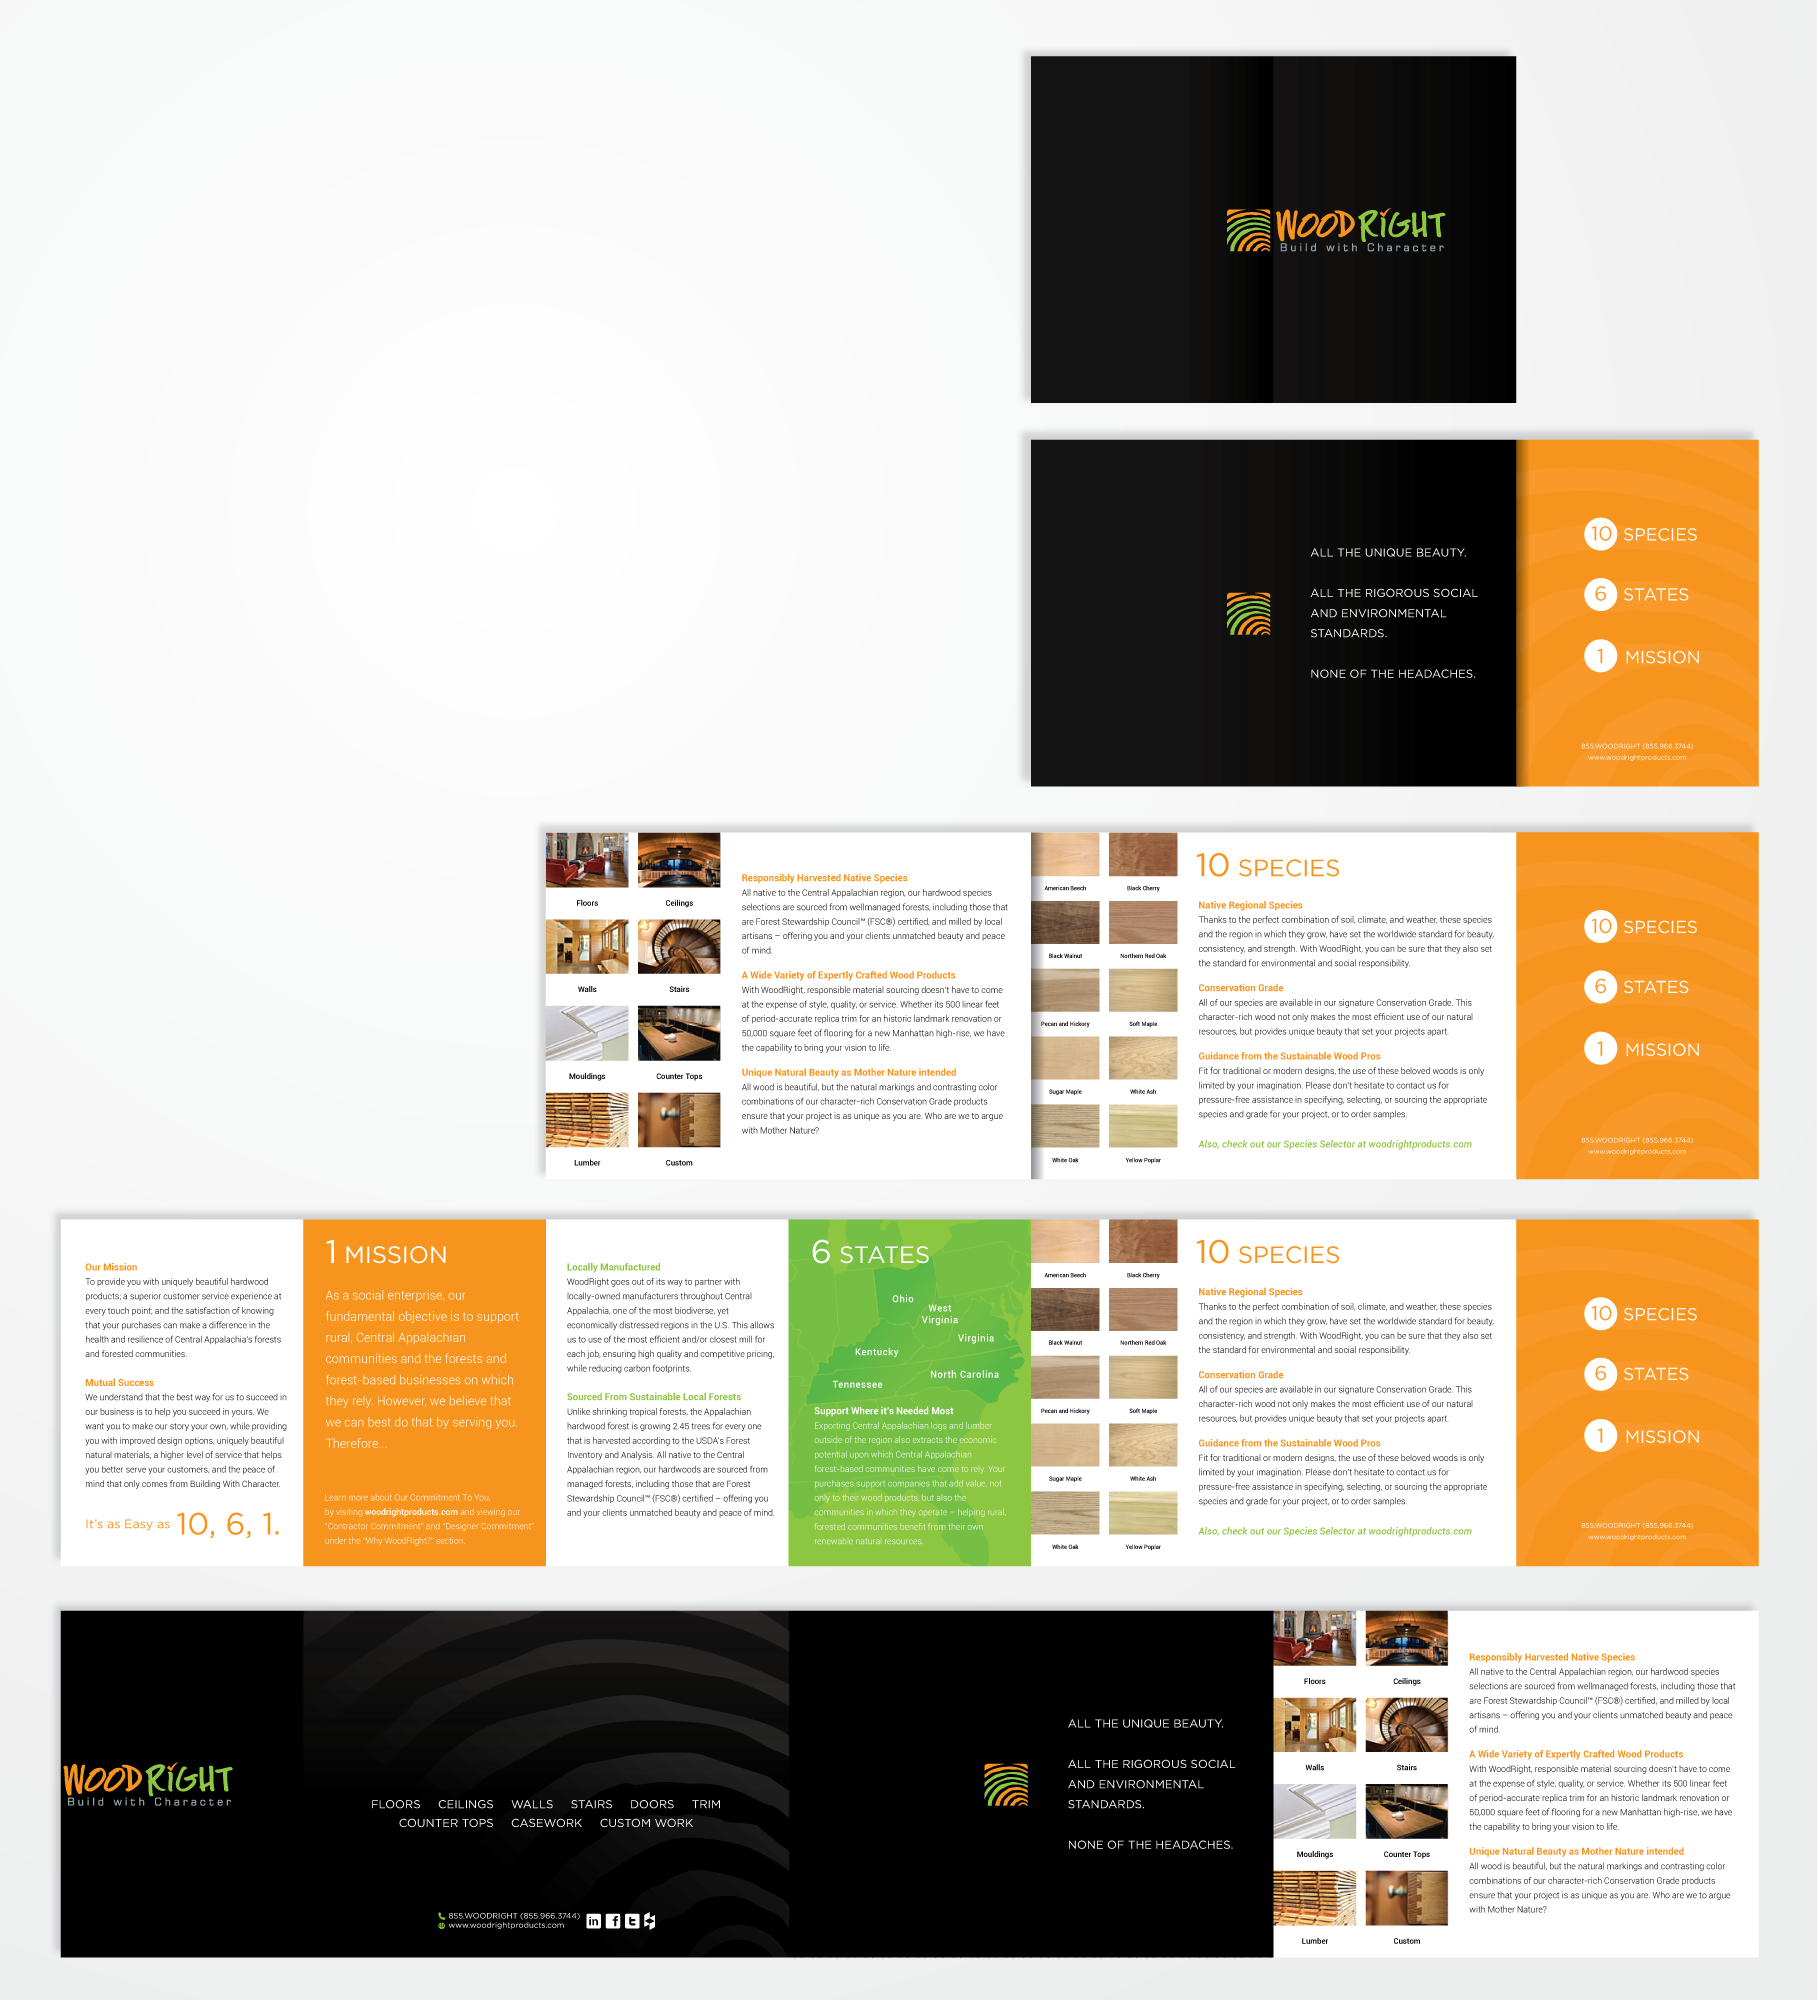 TIRED OF BORING tri-fold brochure designs?! So are we! Check out our concept and get creative!